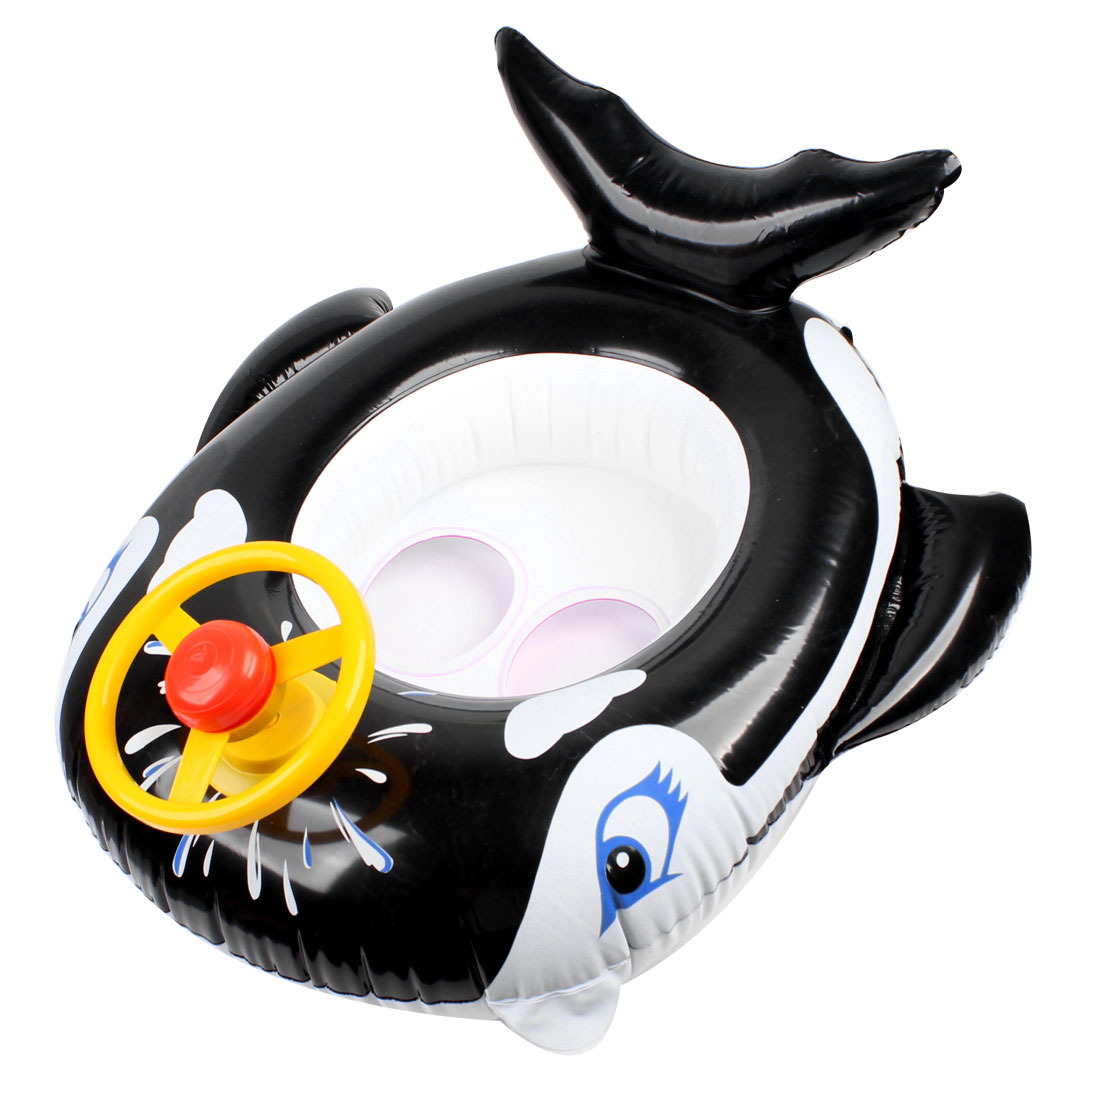 Whale Shaped Inflatable Baby Swimming Seat Float Boat w Steering Wheel